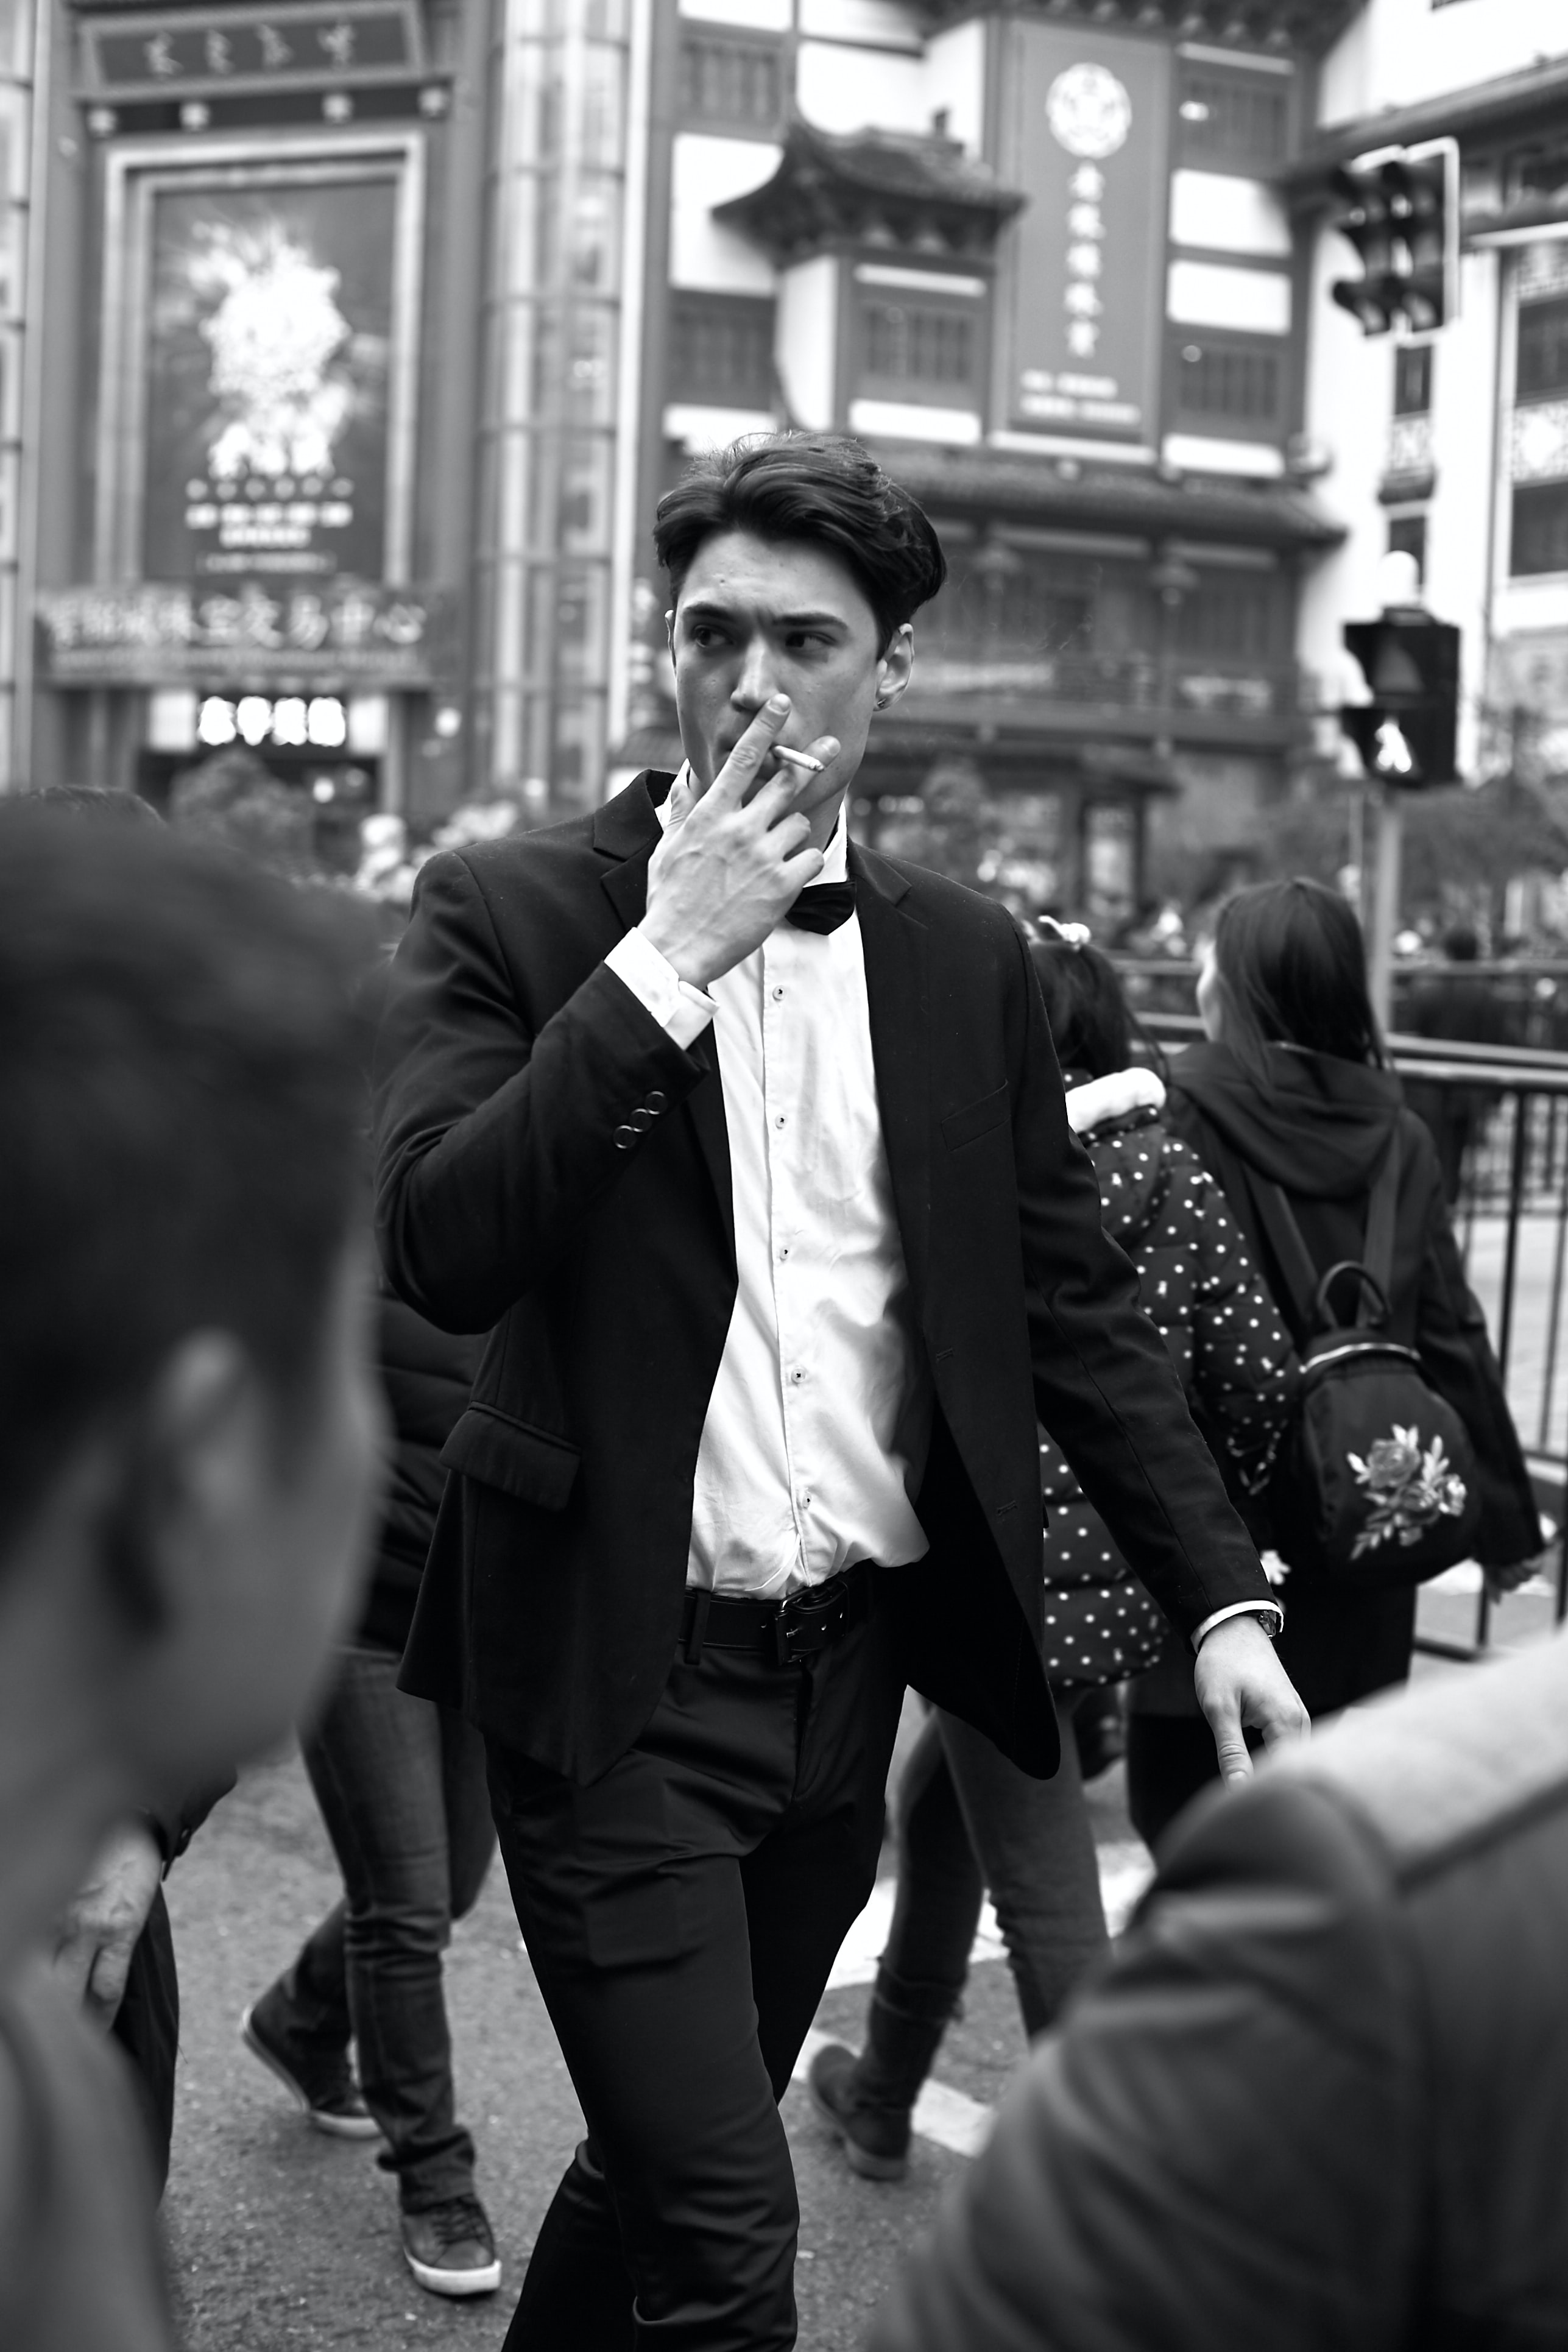 man walking while smoking grayscale photography